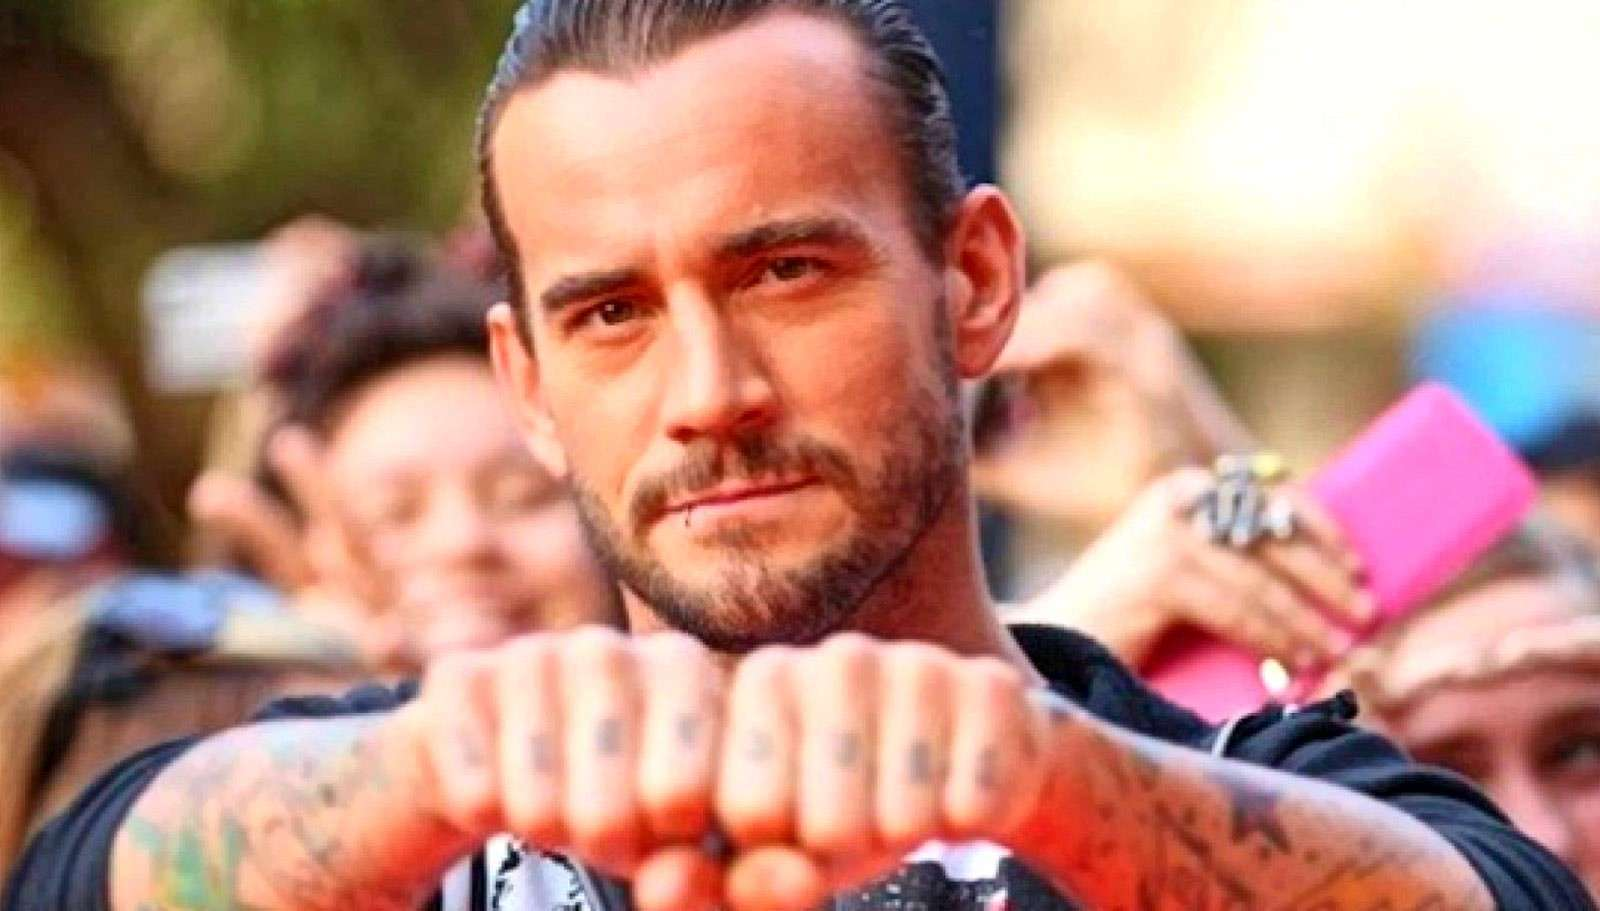 Cm punk 2016 wallpapers wallpaper cave cm punk hd wallpaper 1 download voltagebd Choice Image